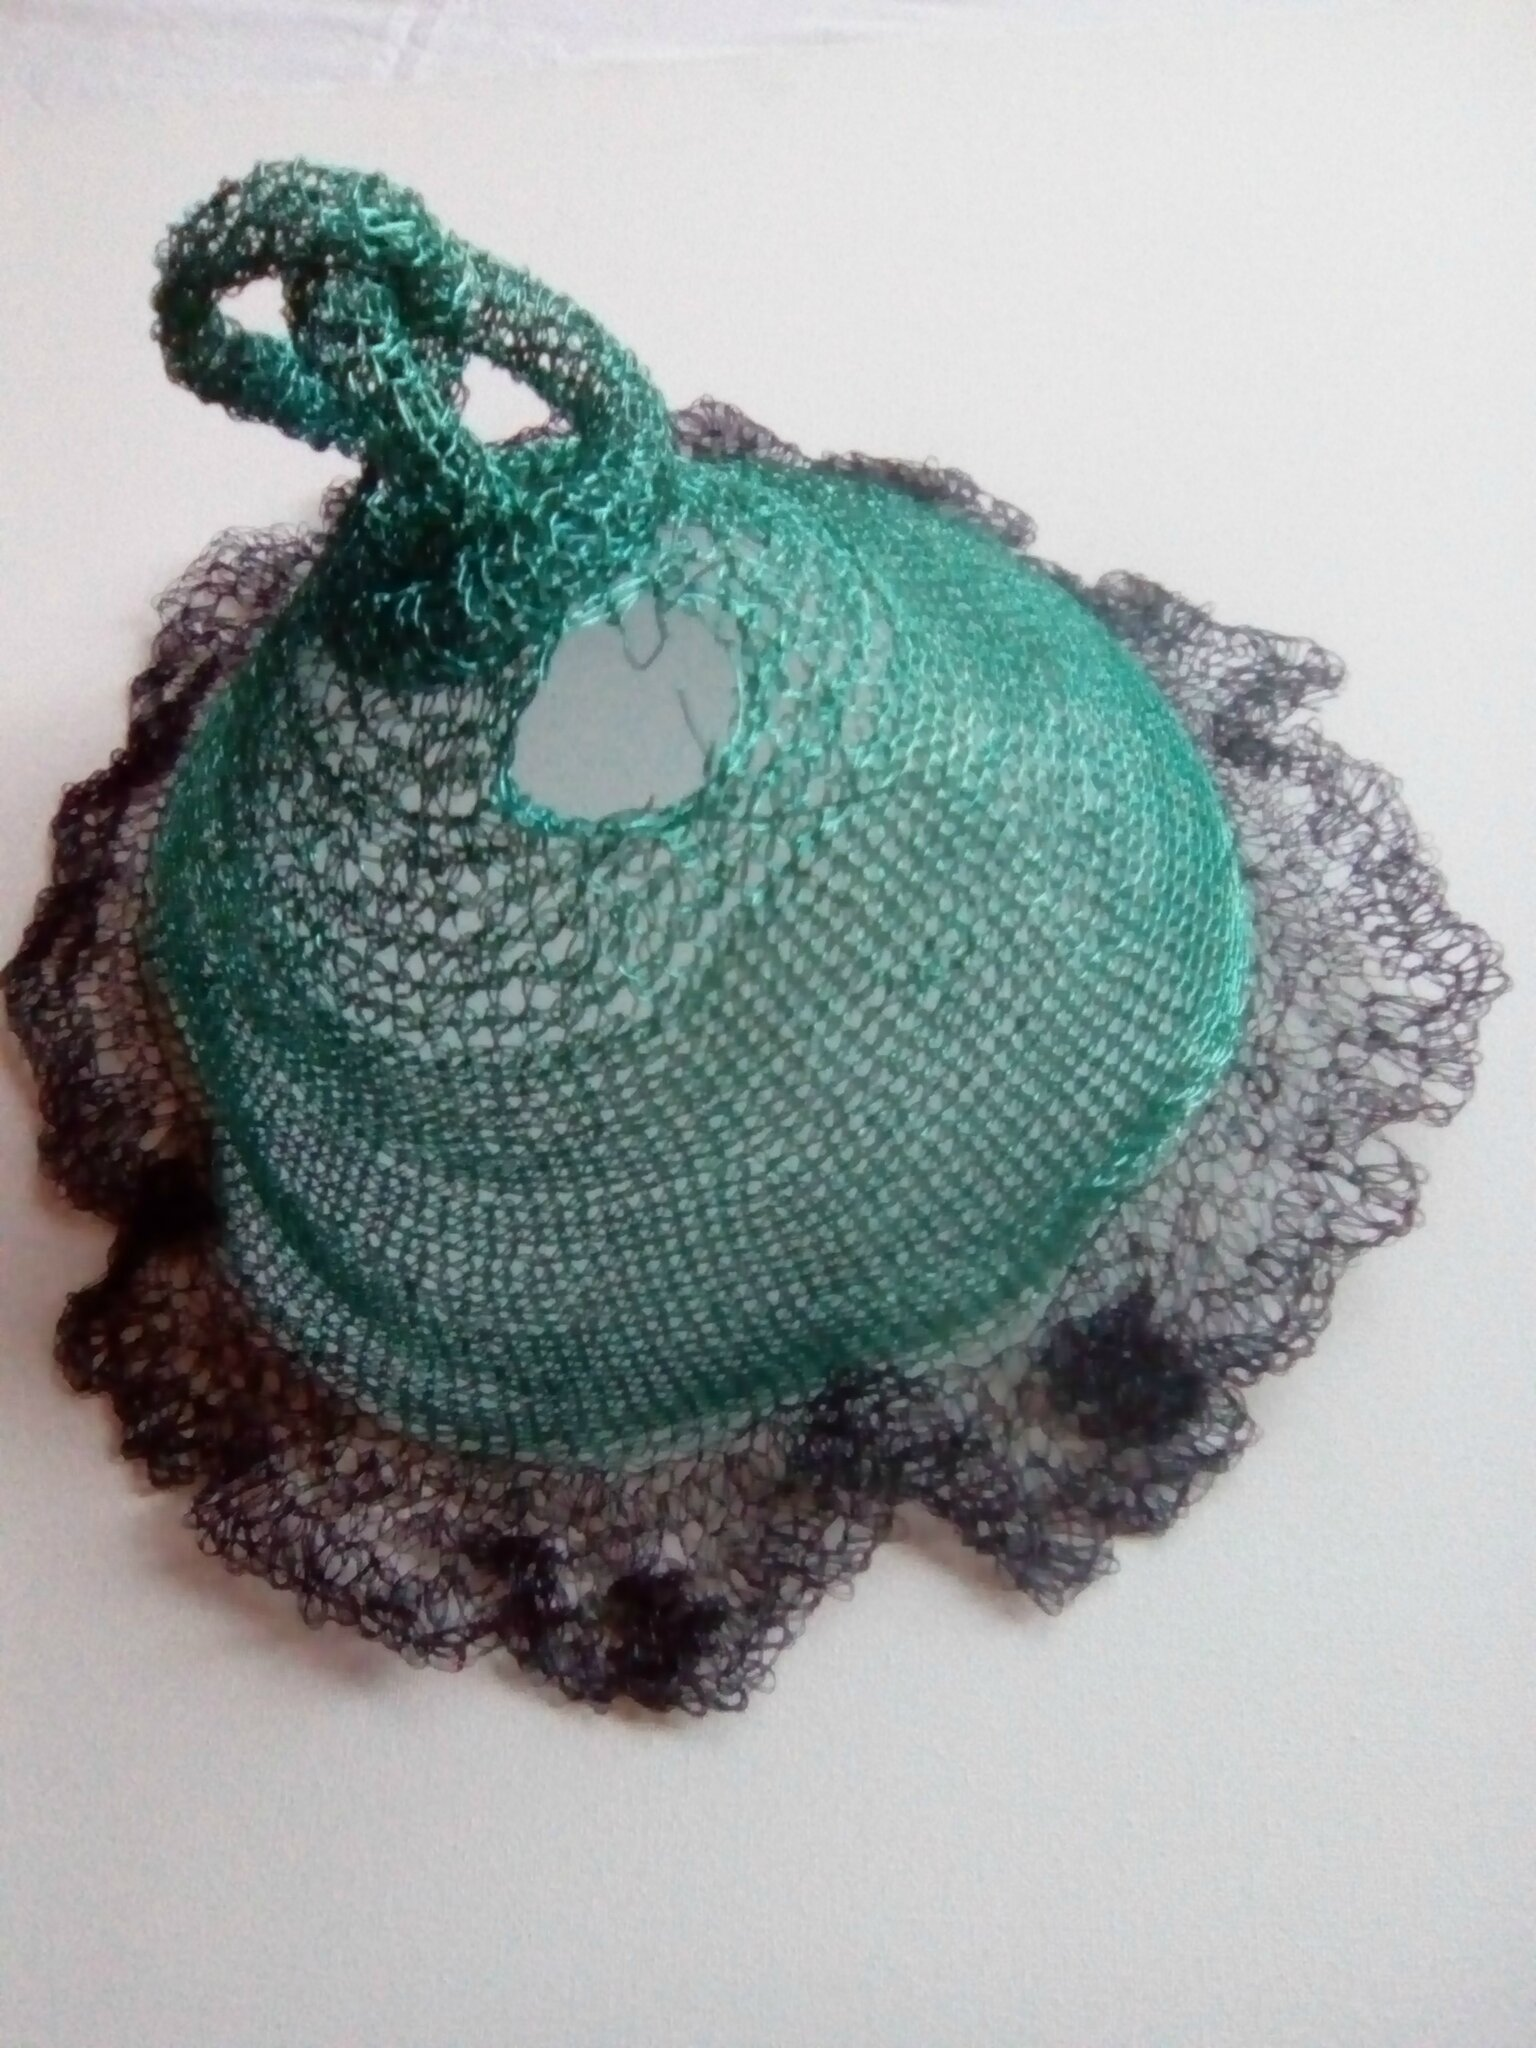 Crochet, fil laiton 0.5mm